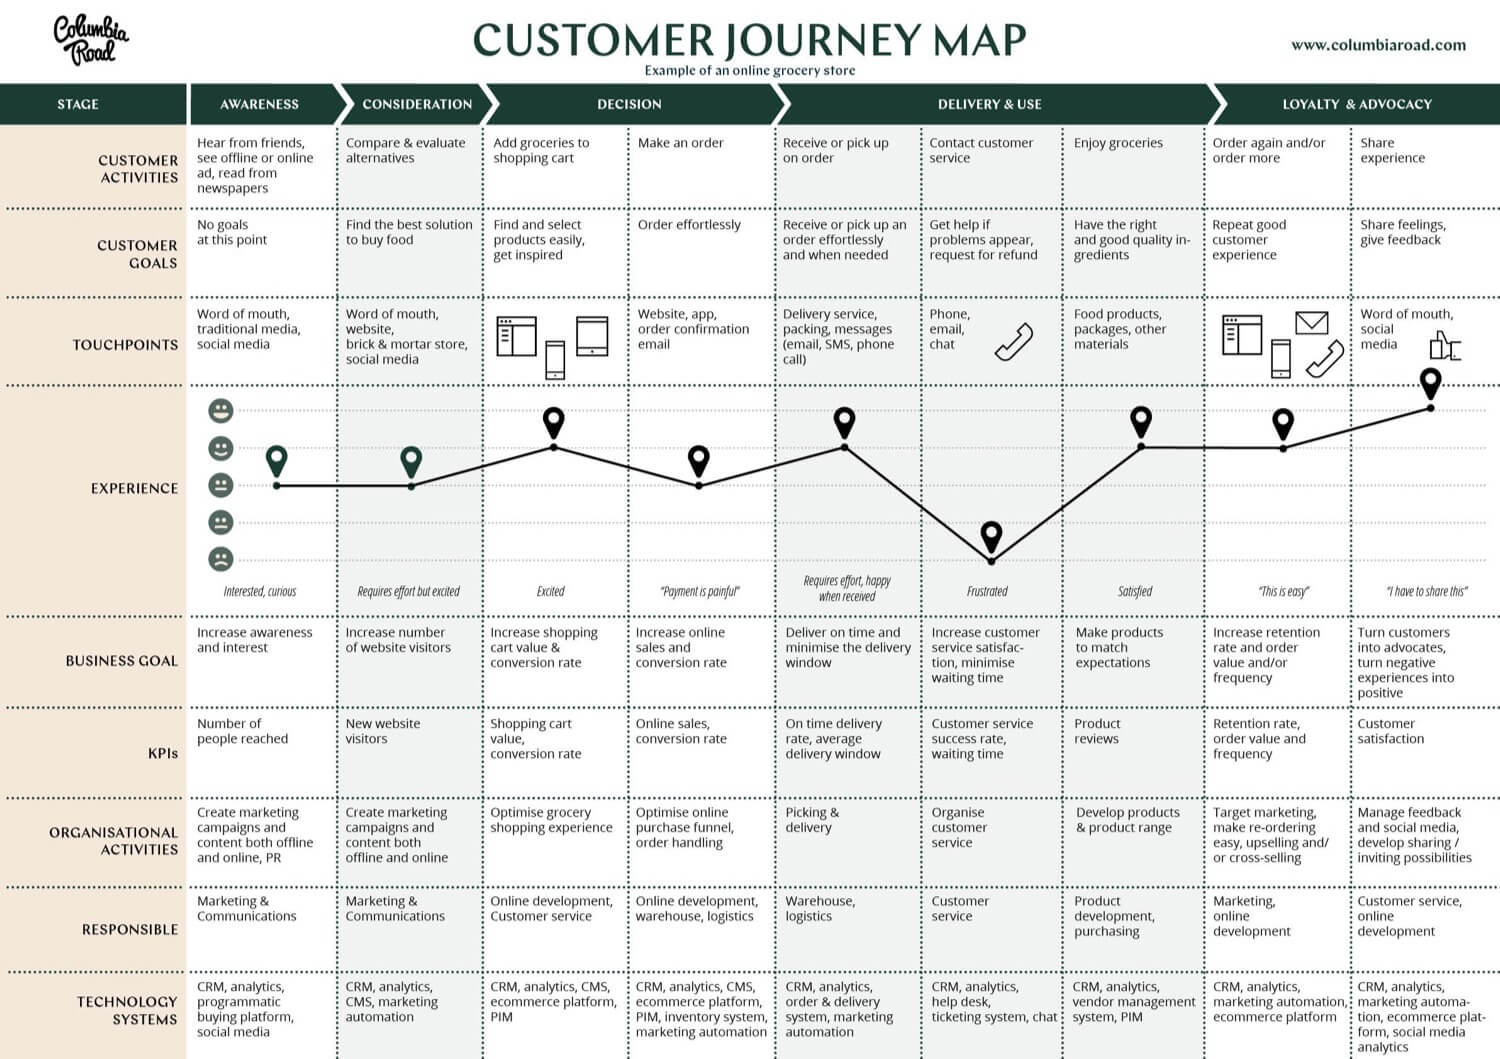 An example of a customer journey map for an online grocery store